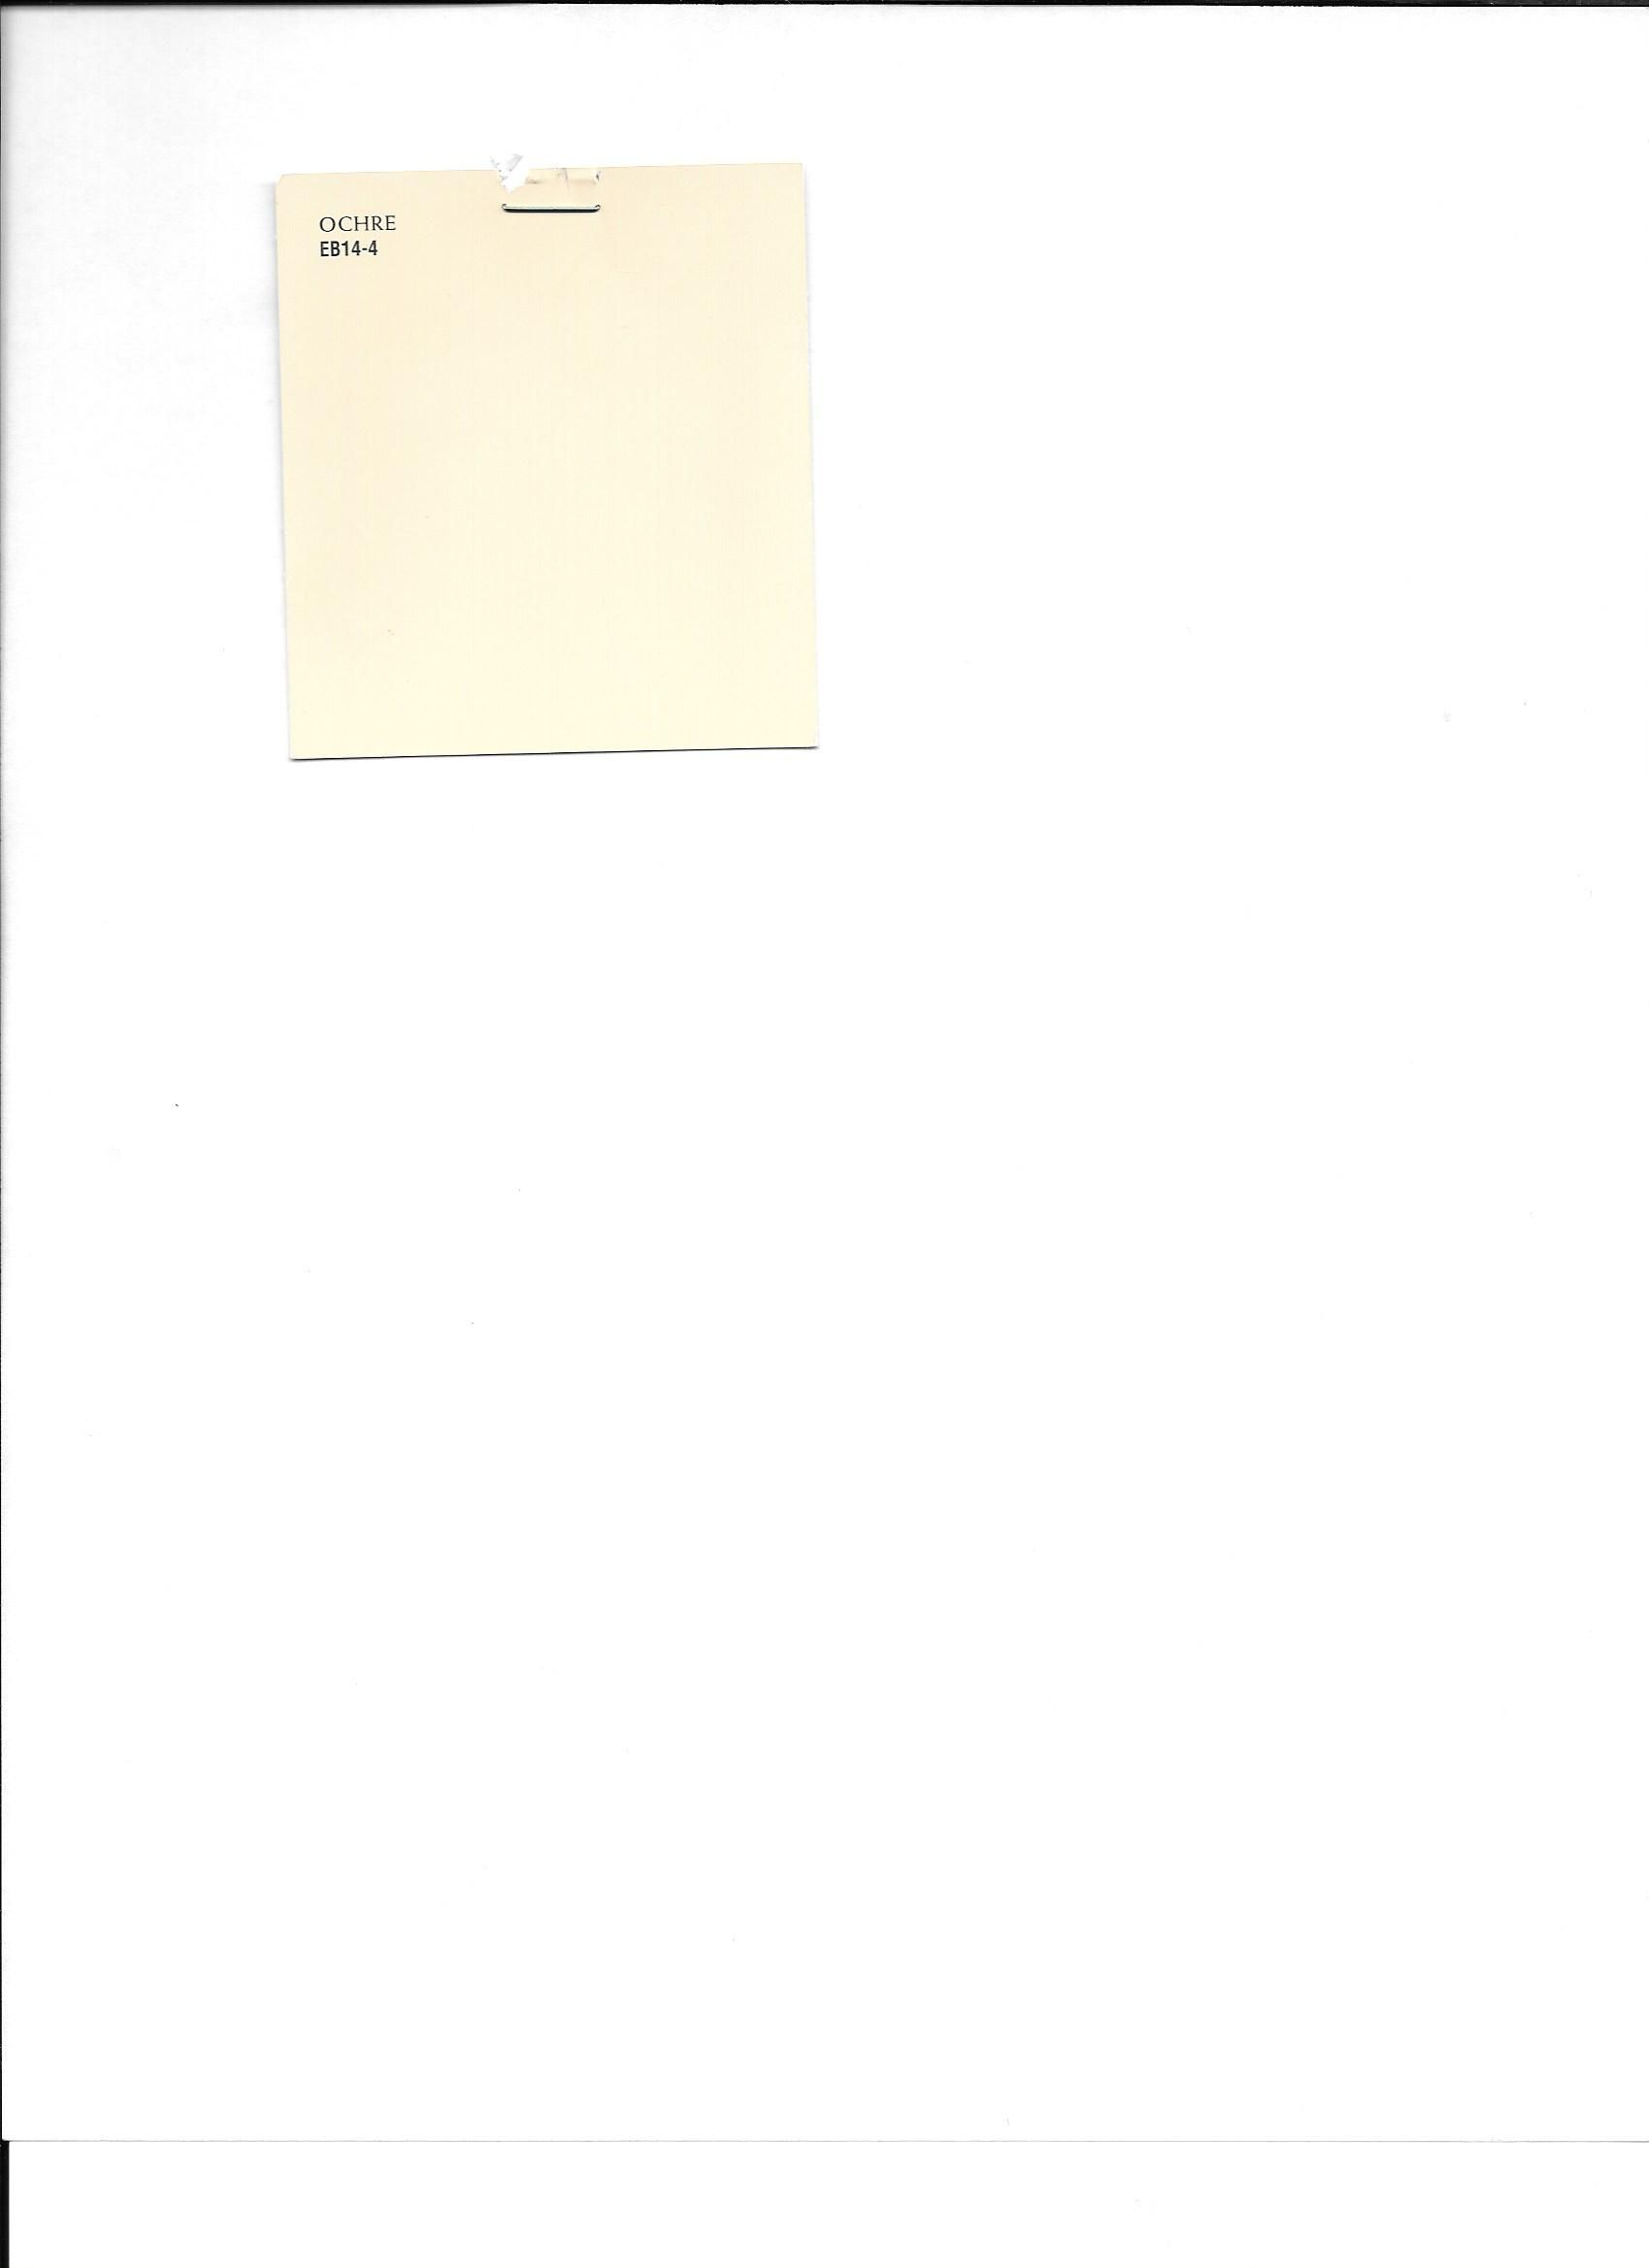 This Is The Color I Have Chosen For My Kitchen Walls OCHRE Valspar Paint  EB14